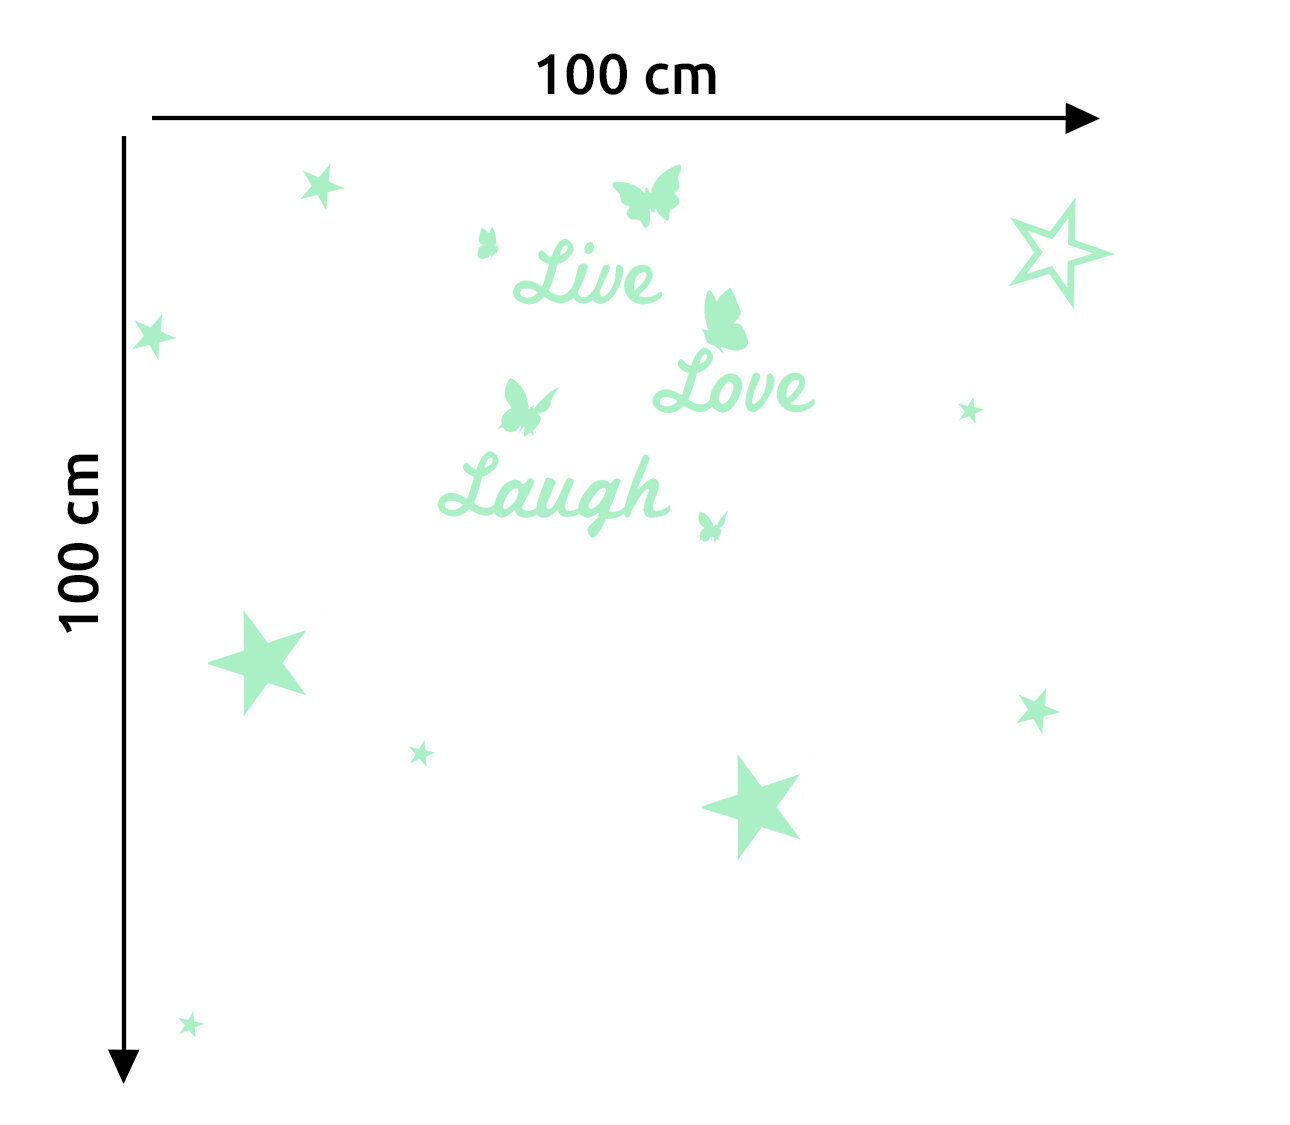 Coleman Live Love Laugh and Stars Glowing Wall Decal